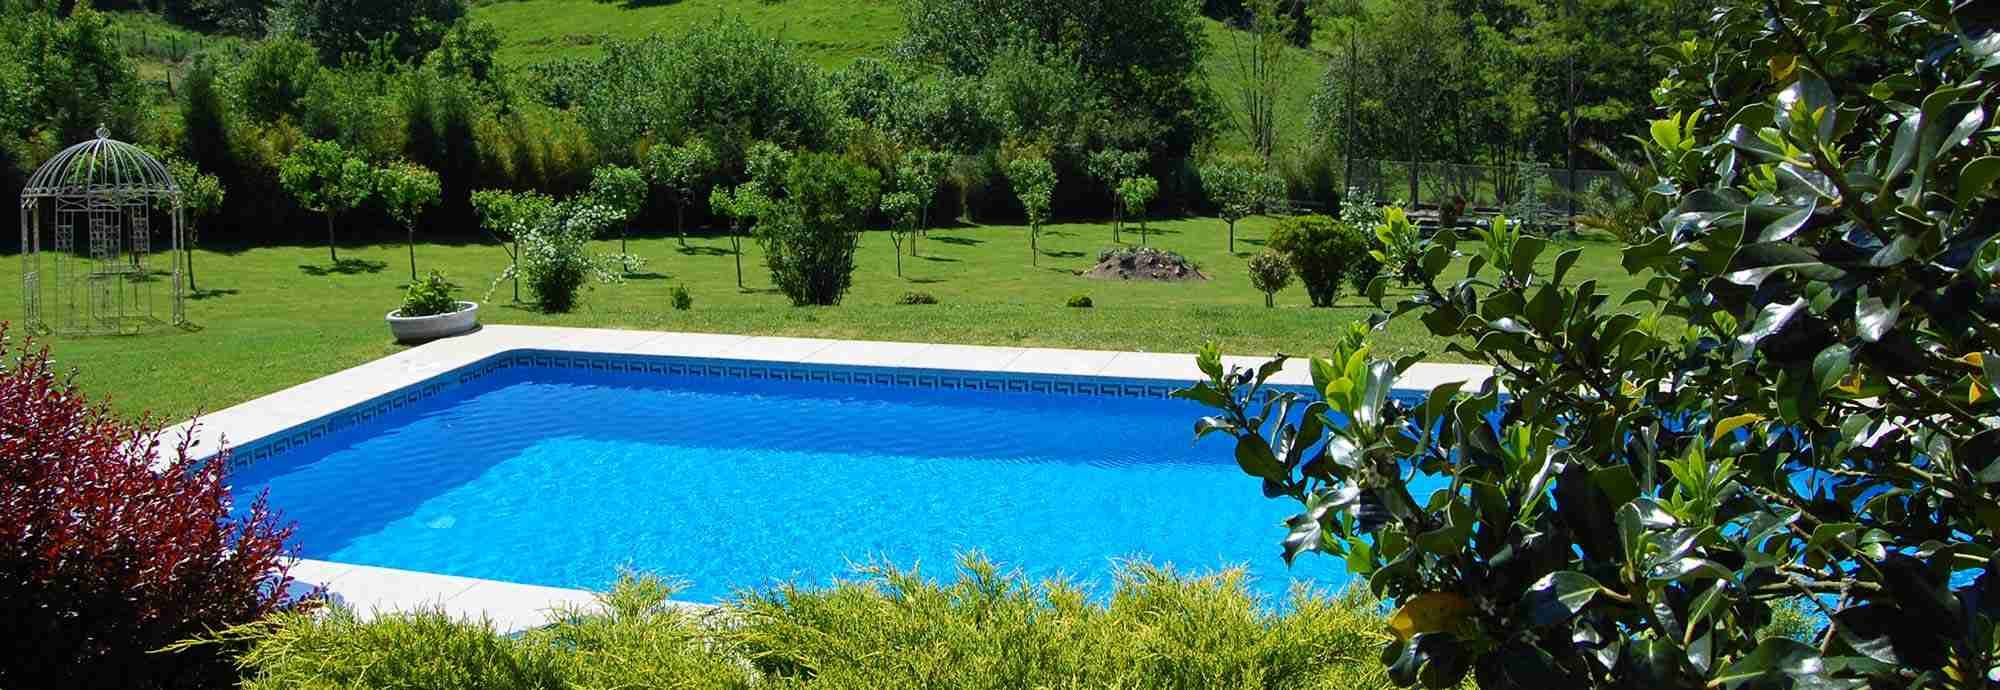 Deals for Holiday  Villas in Northern Spain with Pools